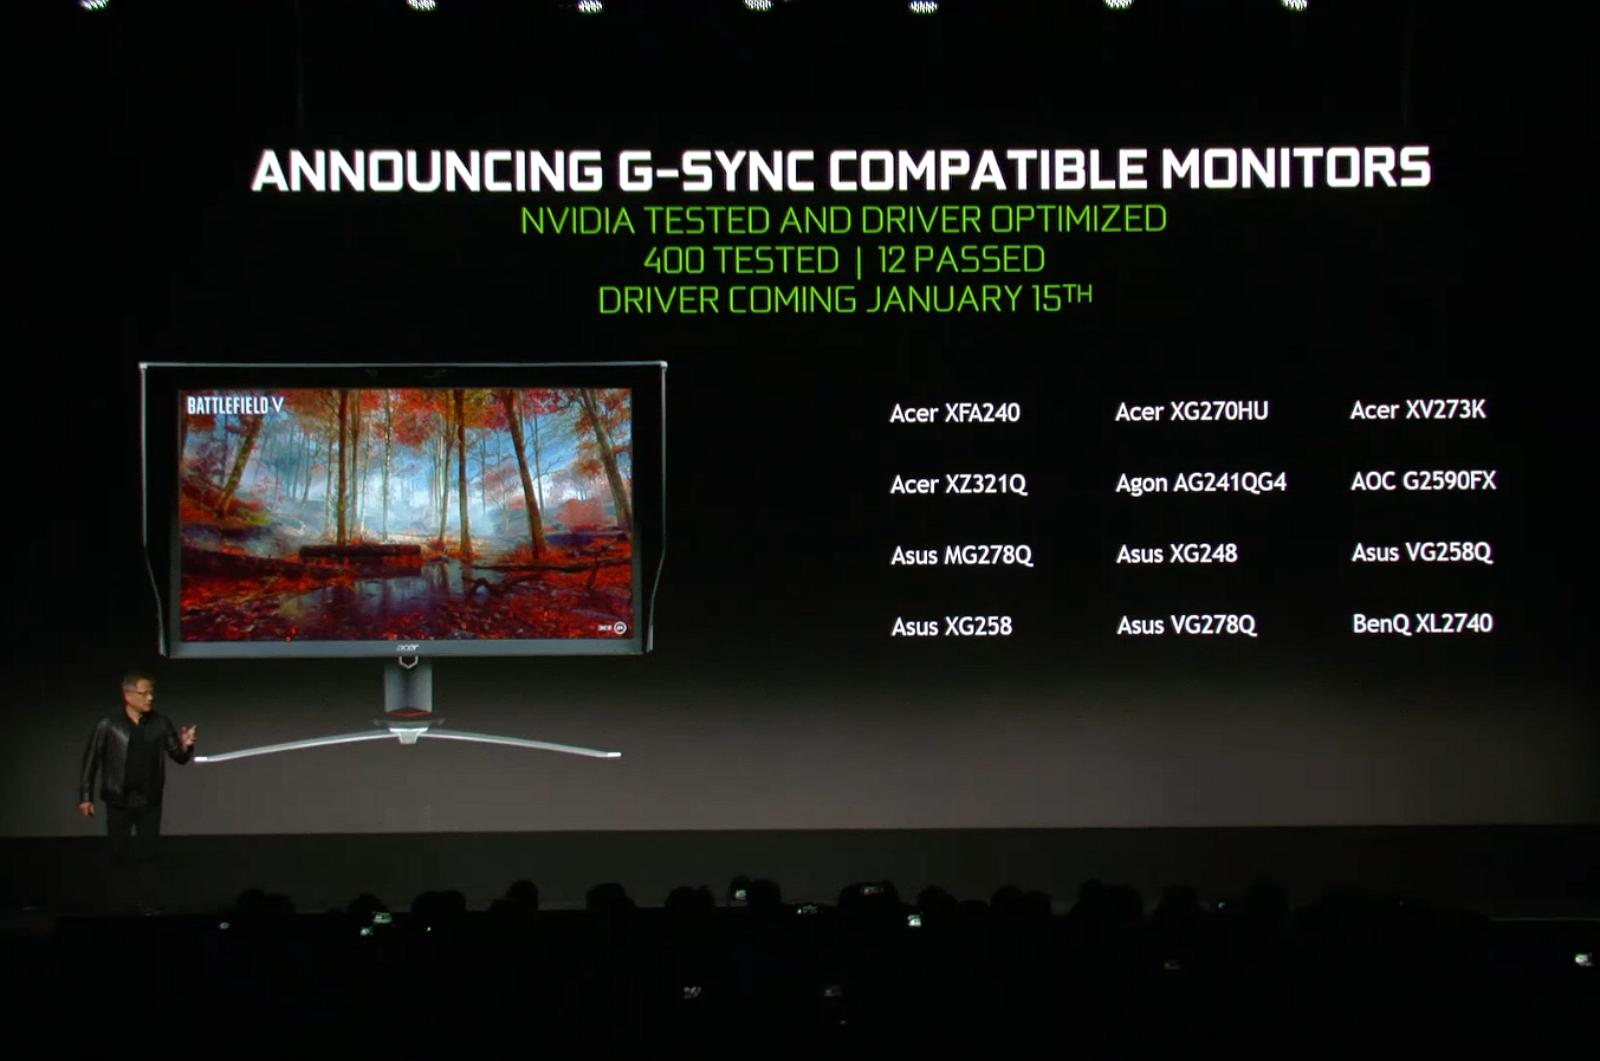 Nvidia G-Sync on FreeSync monitors